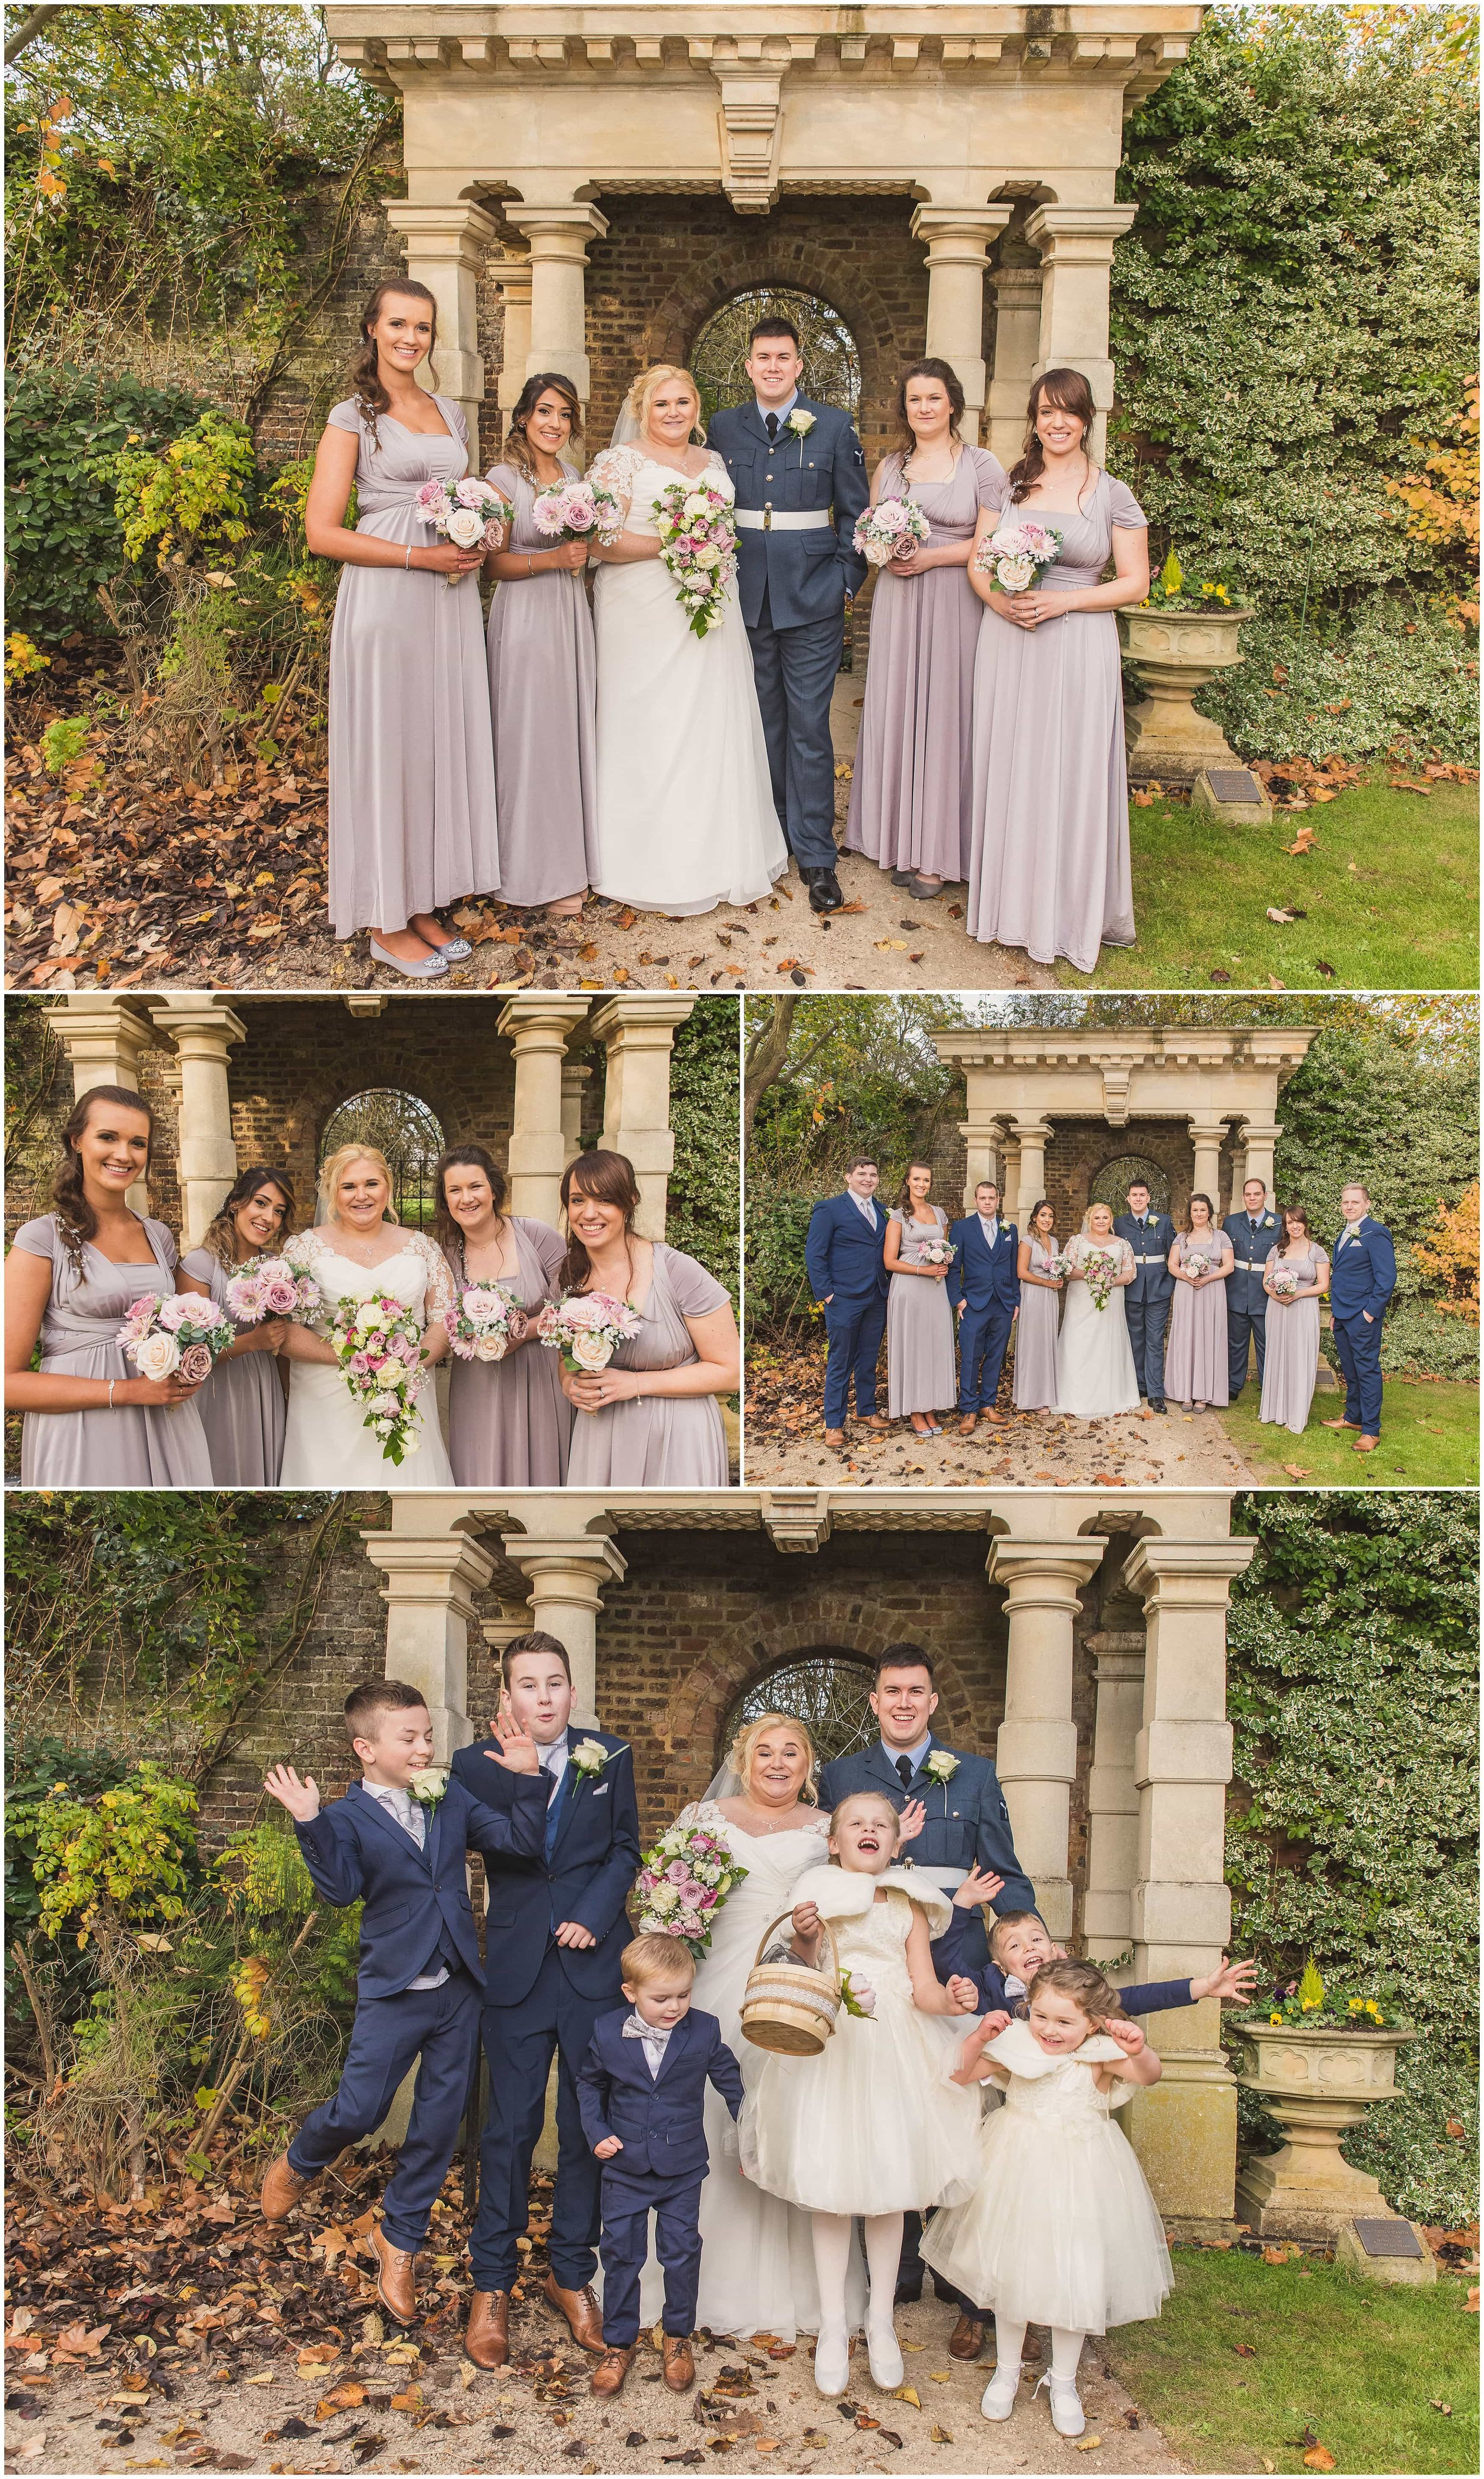 Wedding Group photos in beautiful Walled Gardens in Sunbury